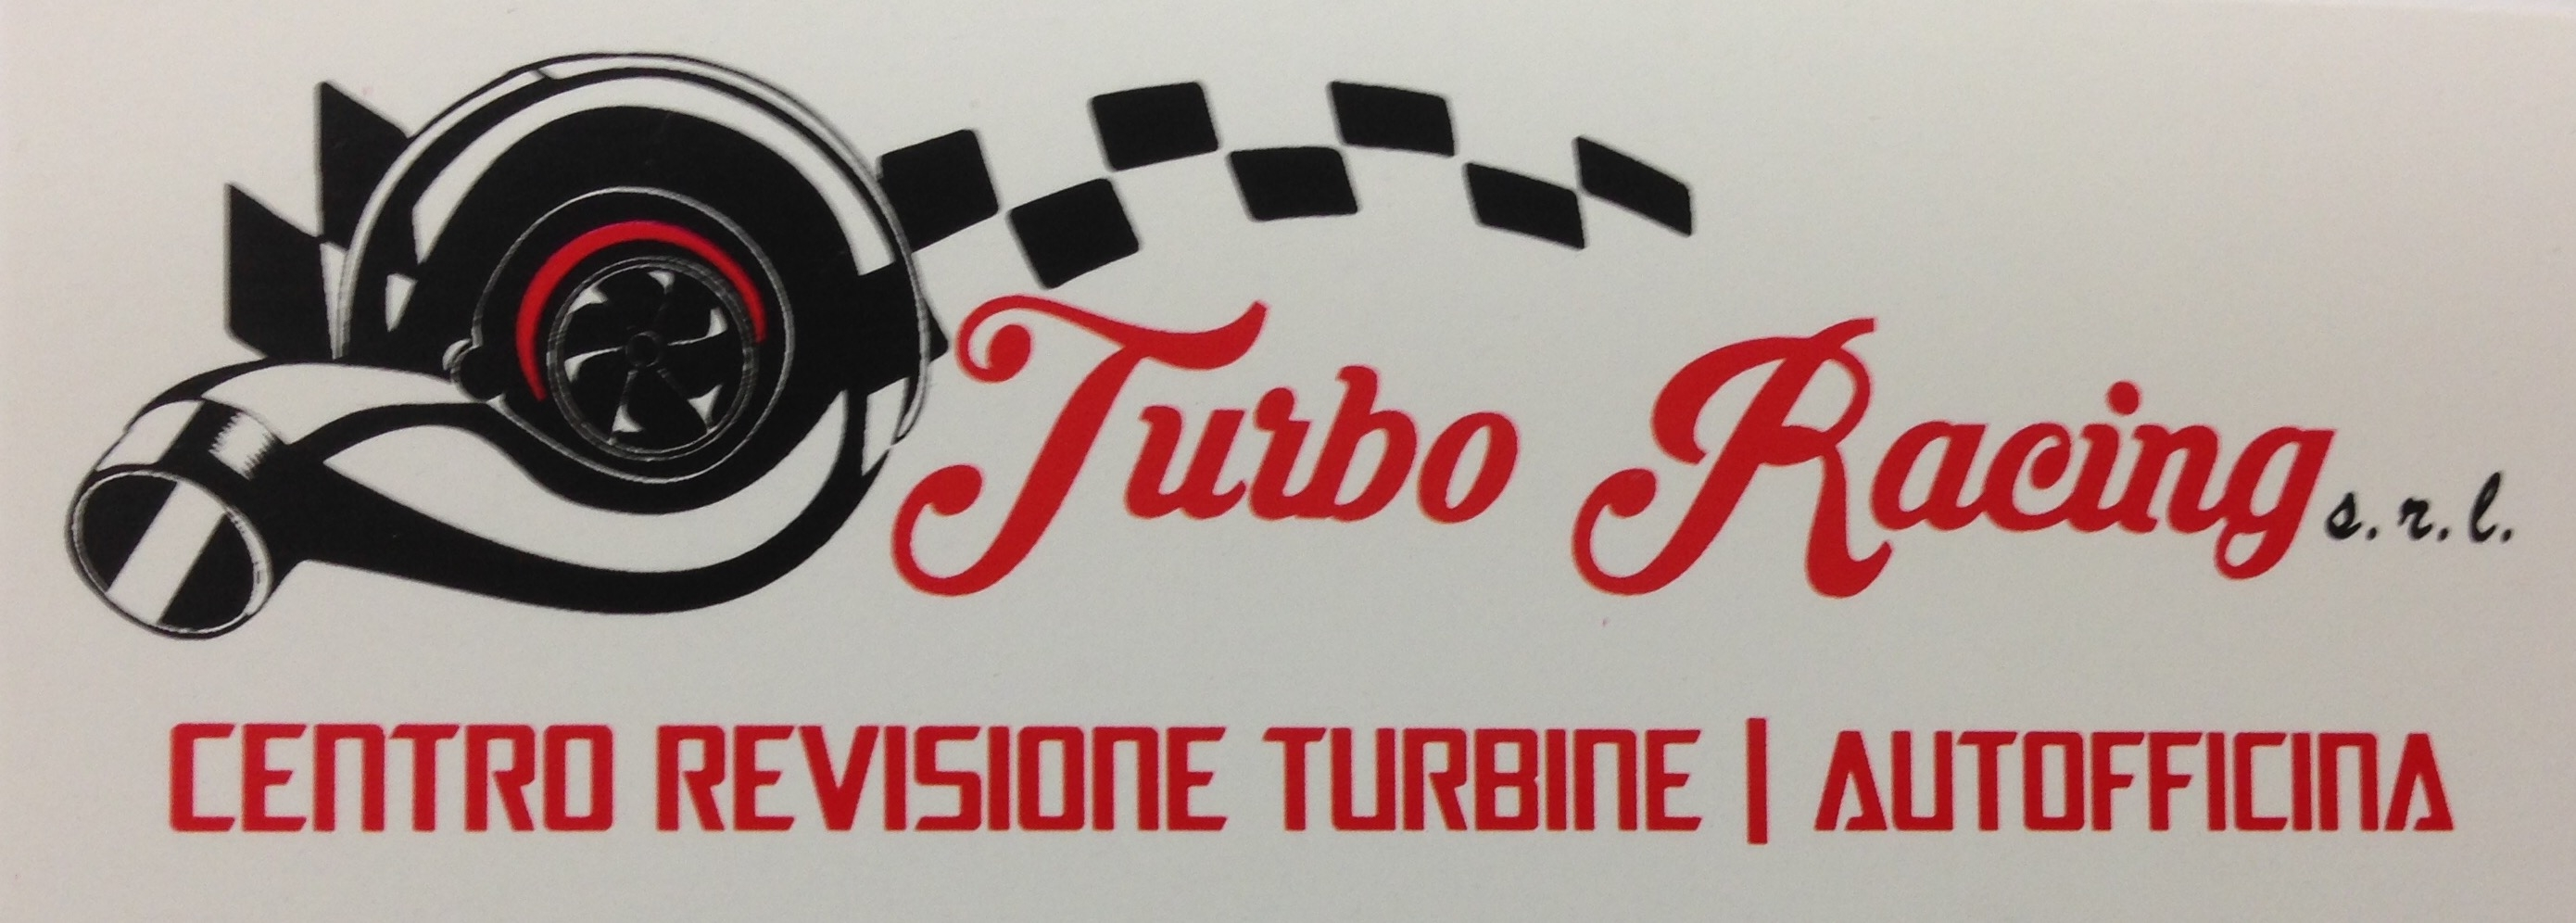 logo Turbo Racing S.r.l.